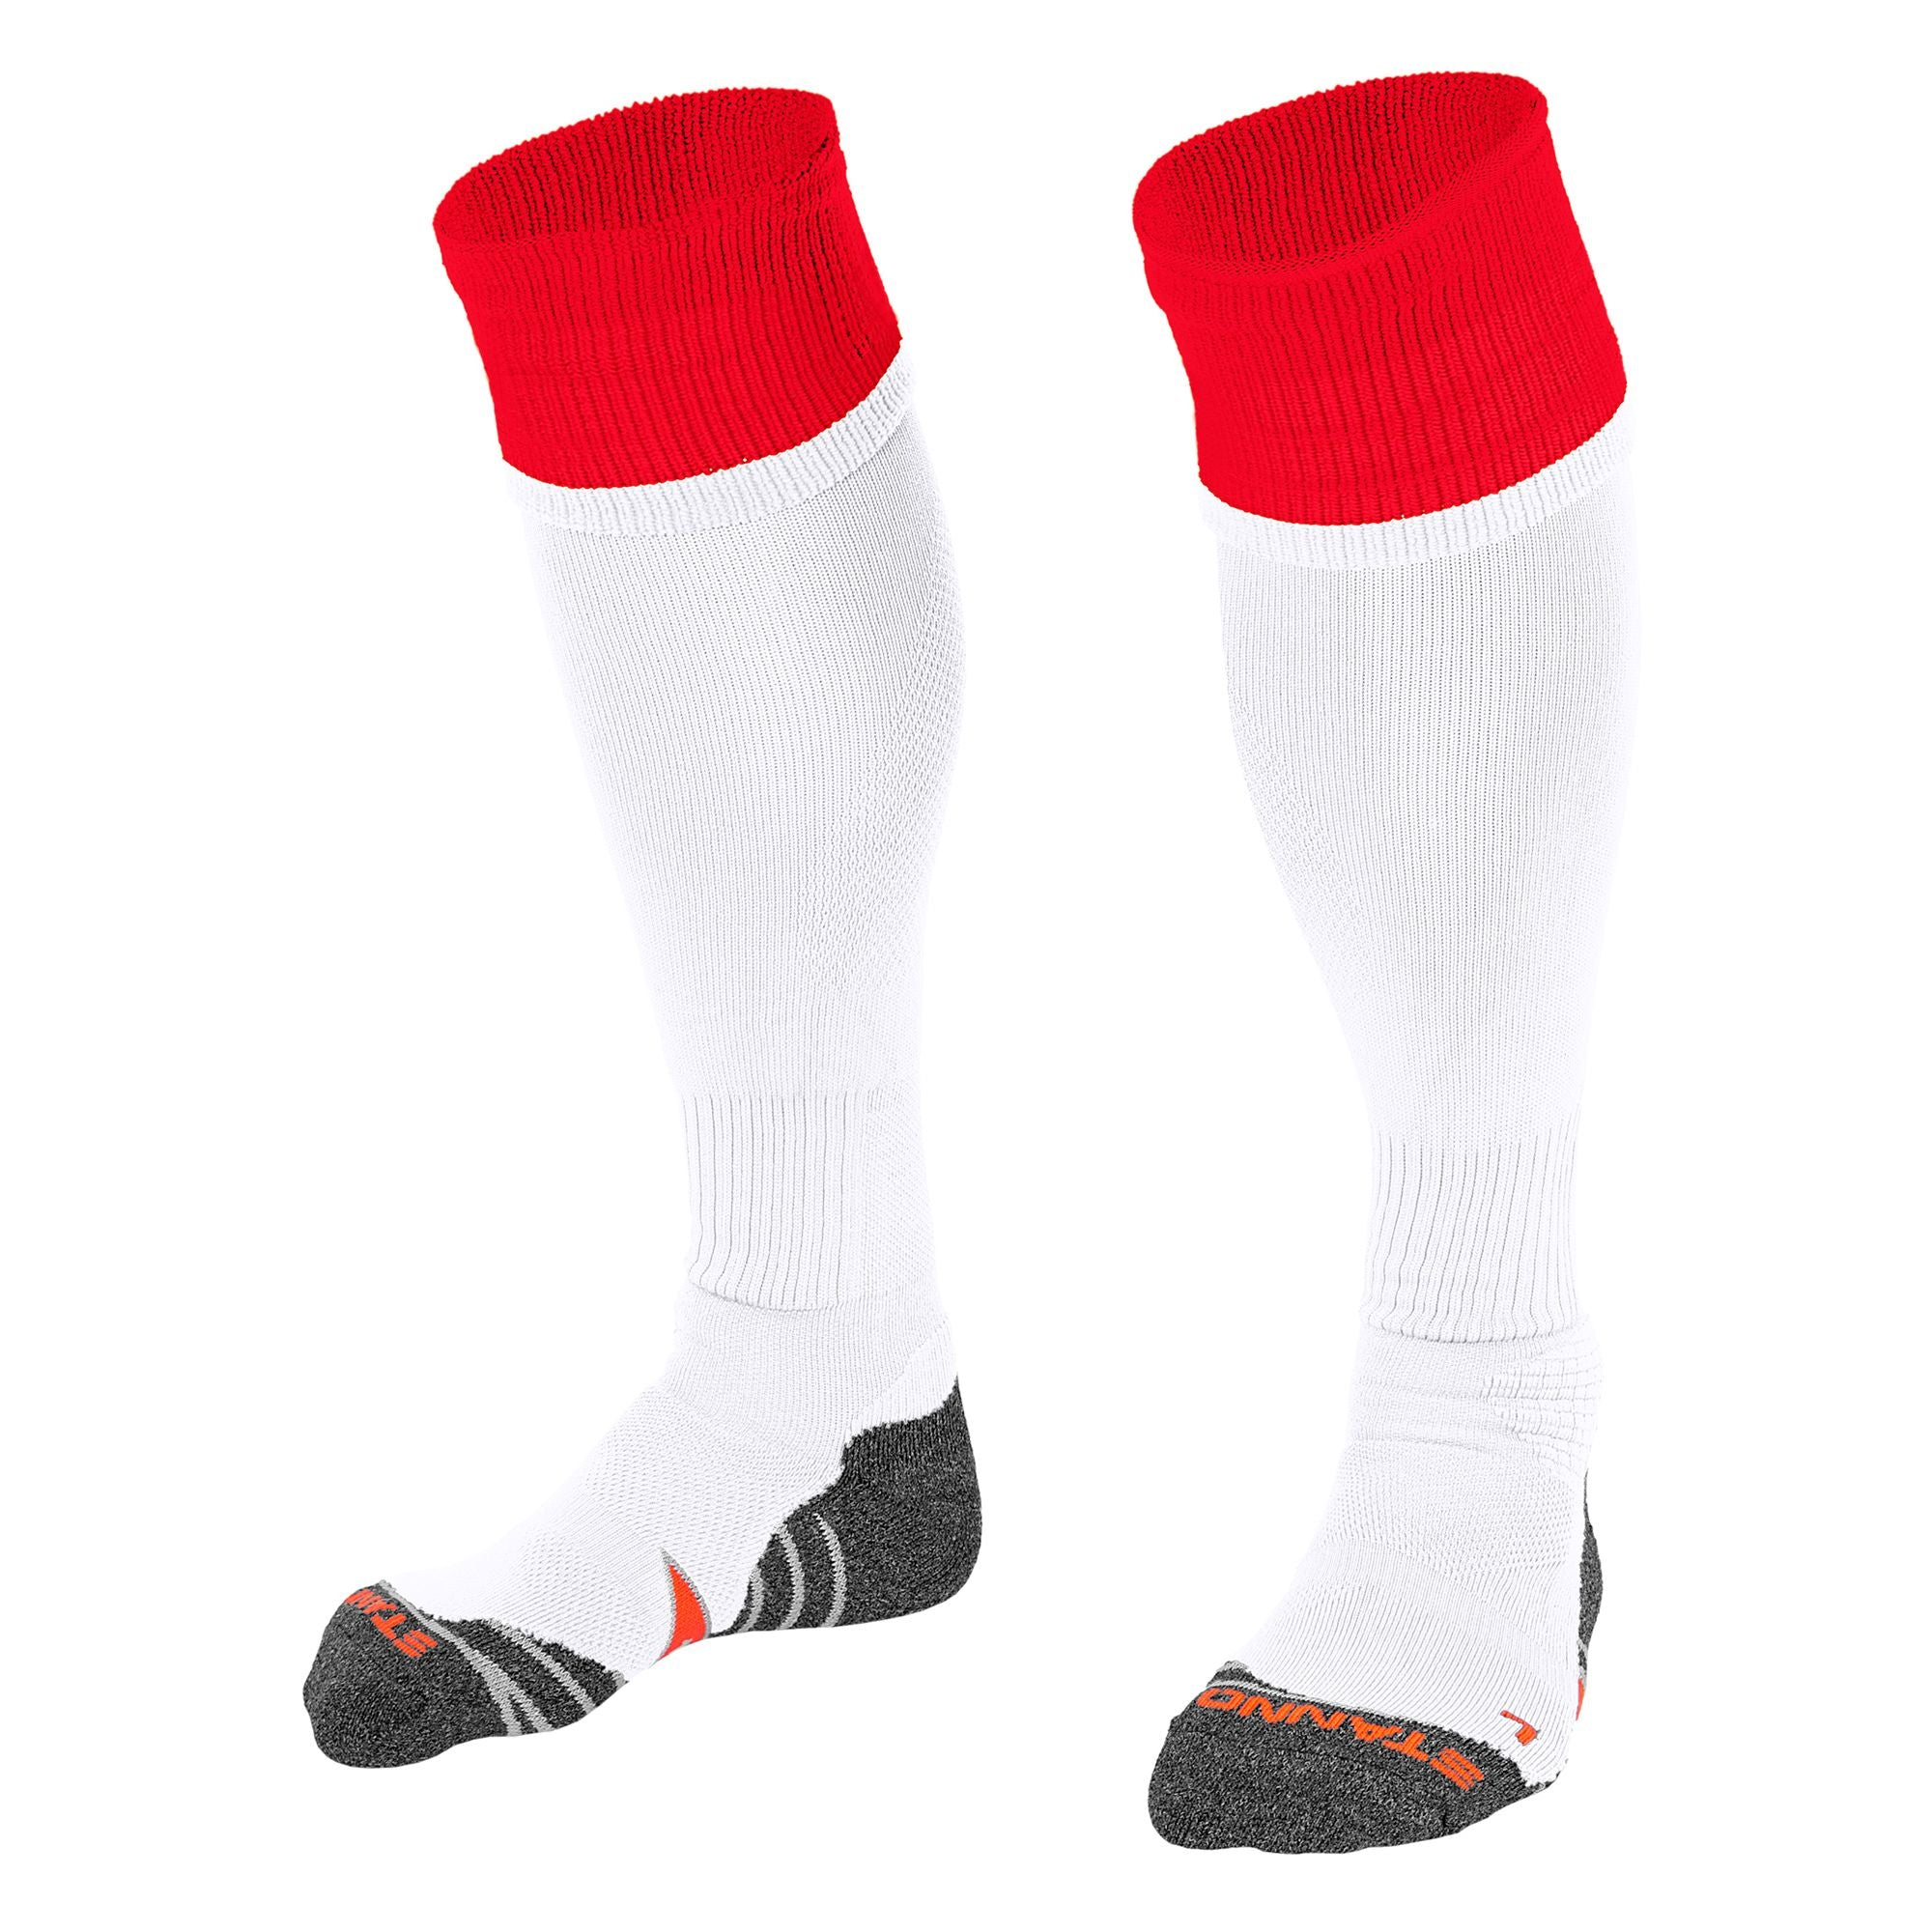 Stanno Combi Sock in white with red contrast tops